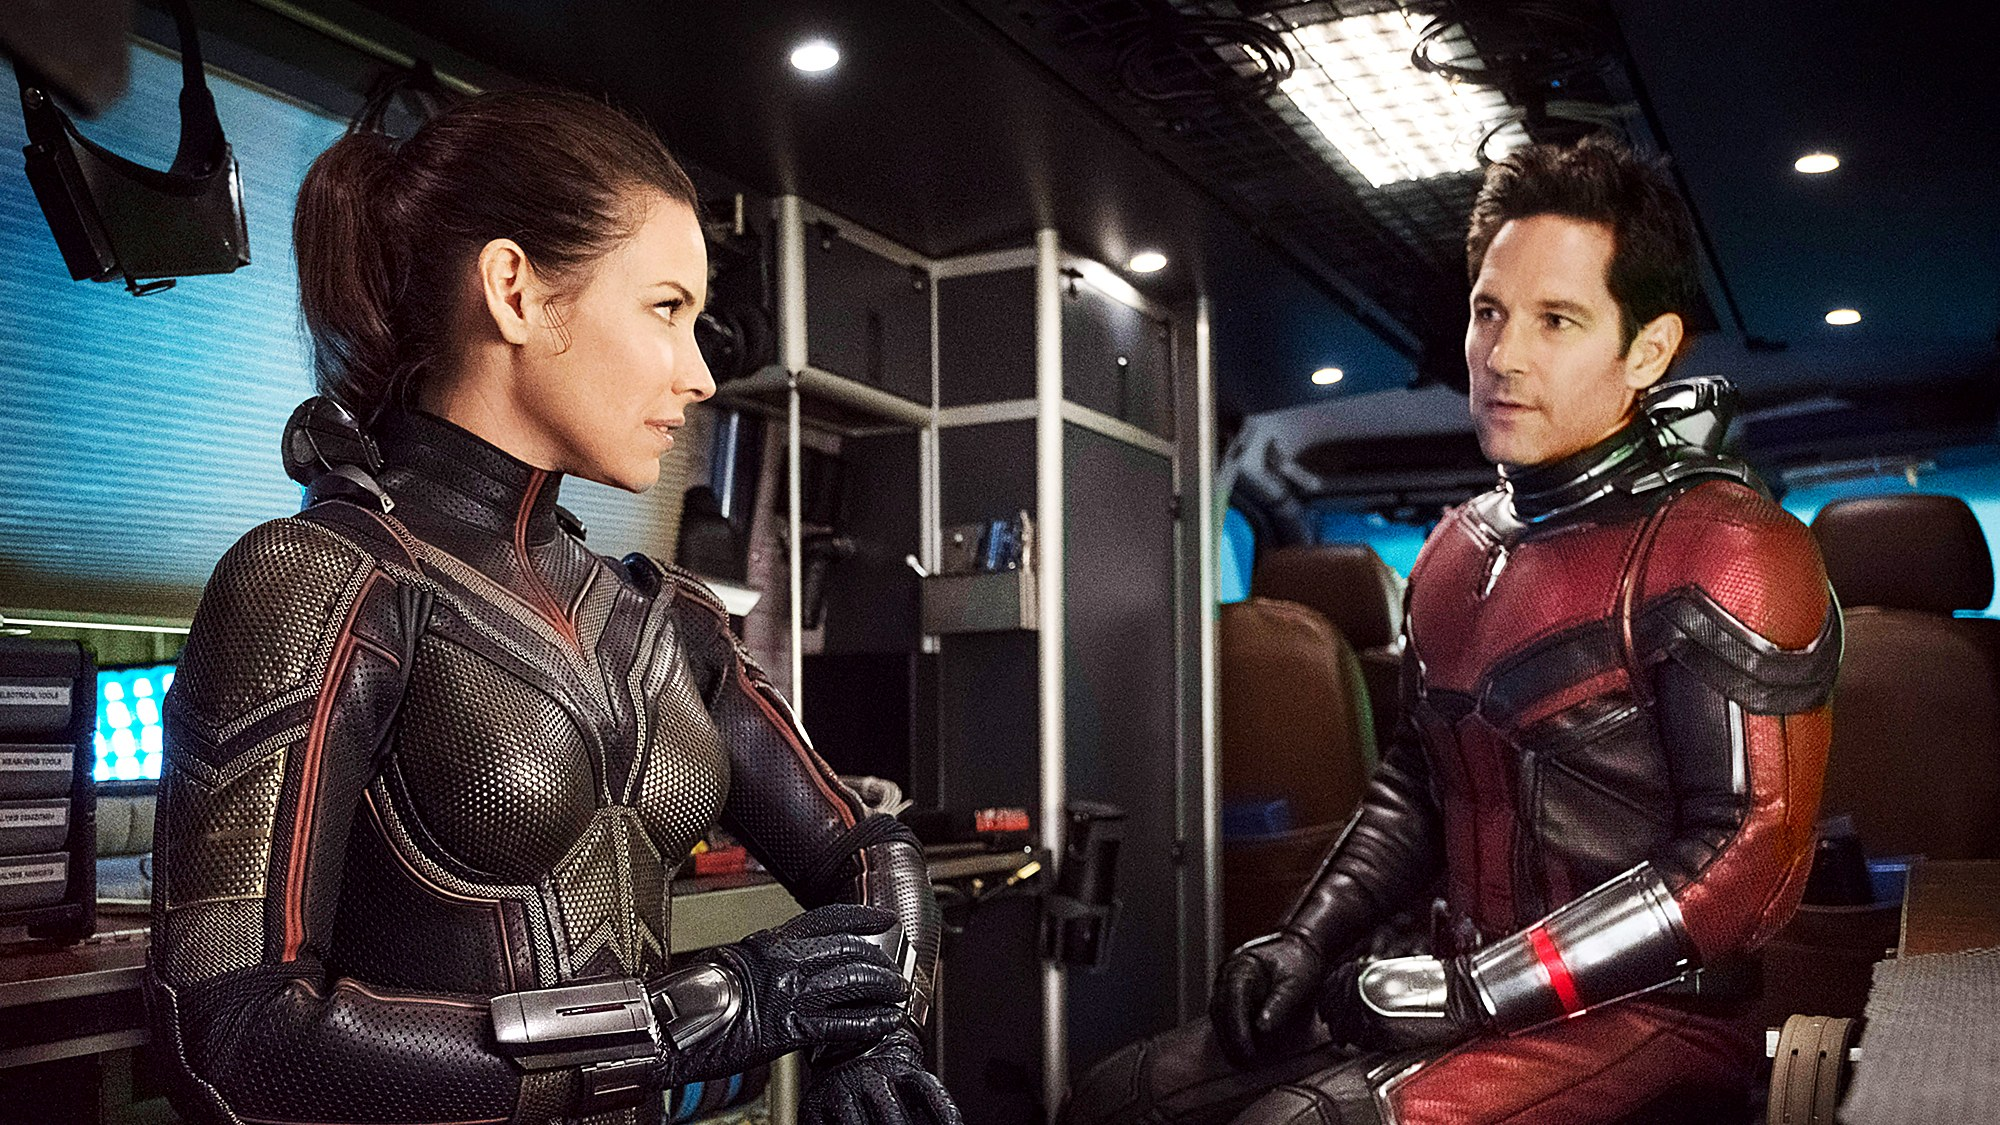 ant-man-and-the-wasp-interview-gq-2018-070918